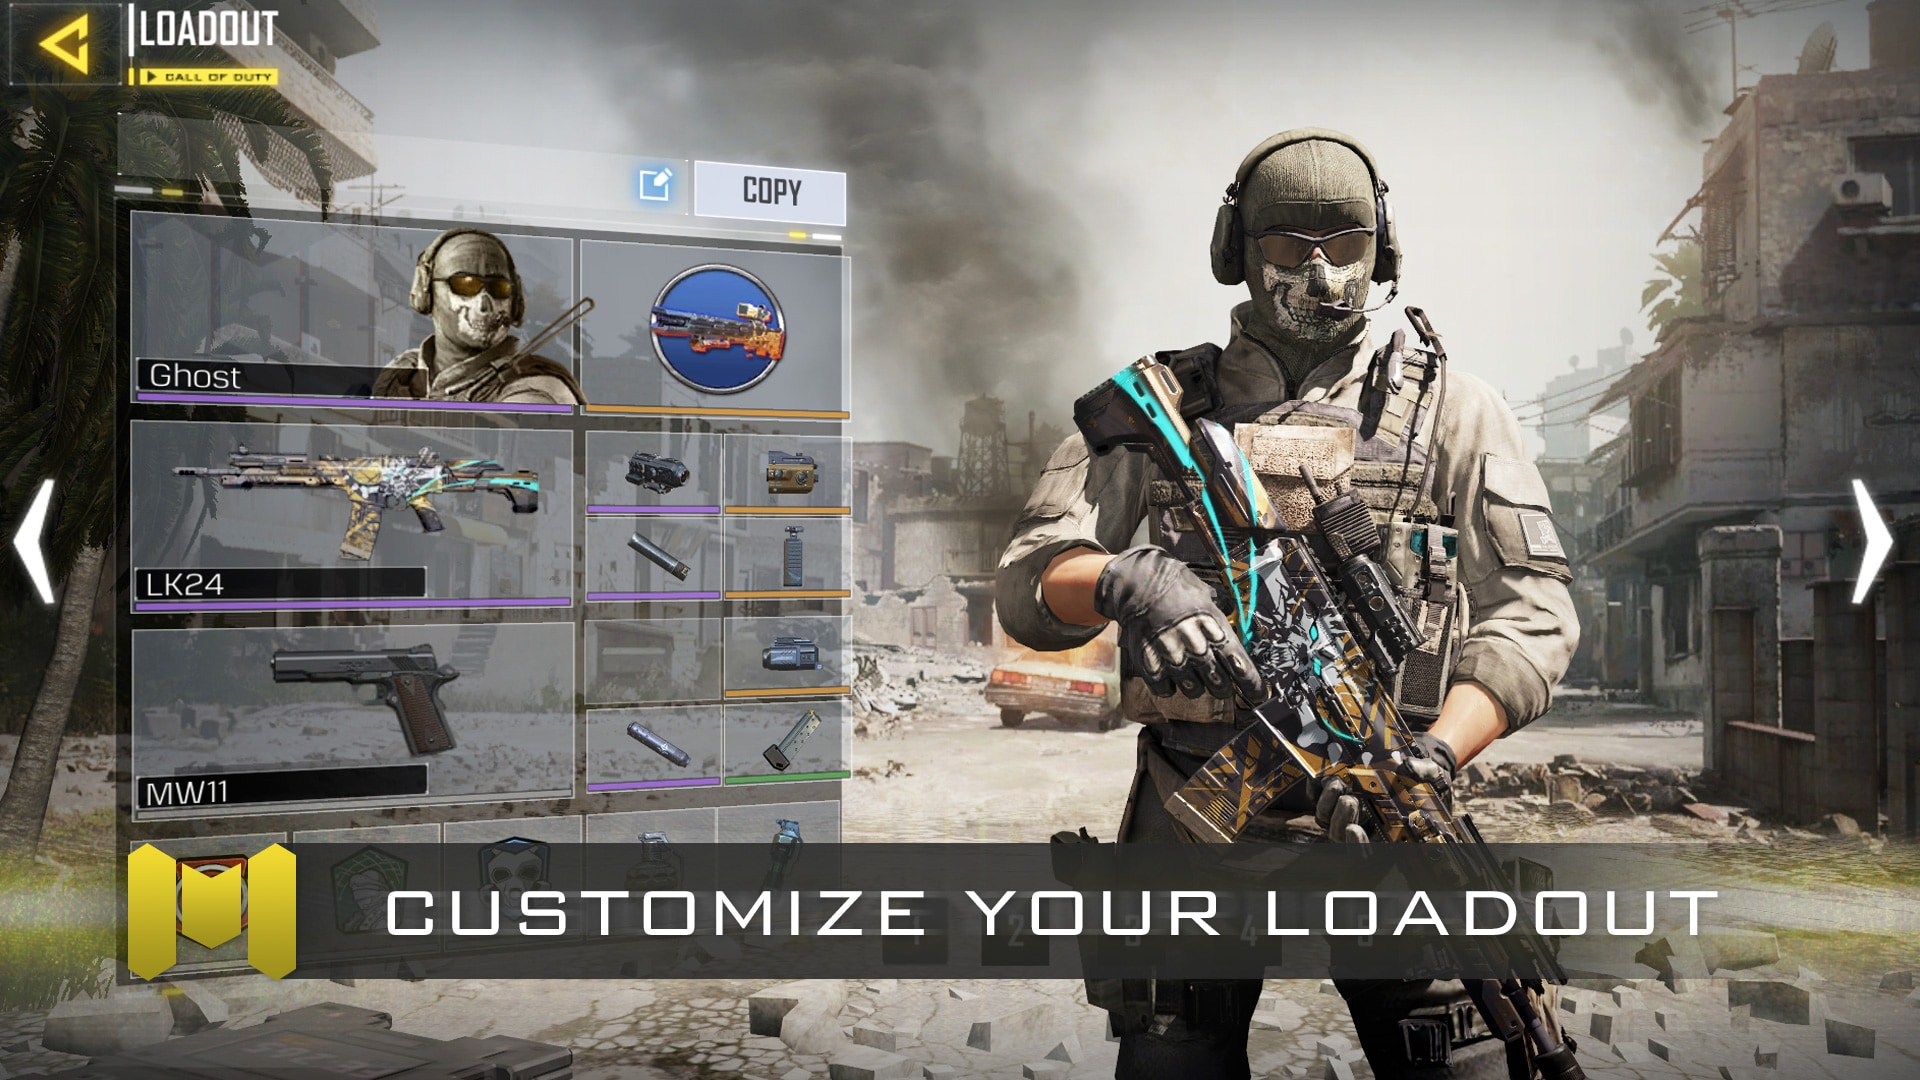 Call of Duty Mobile_005_Customize Your Loadout_FINAL[2]